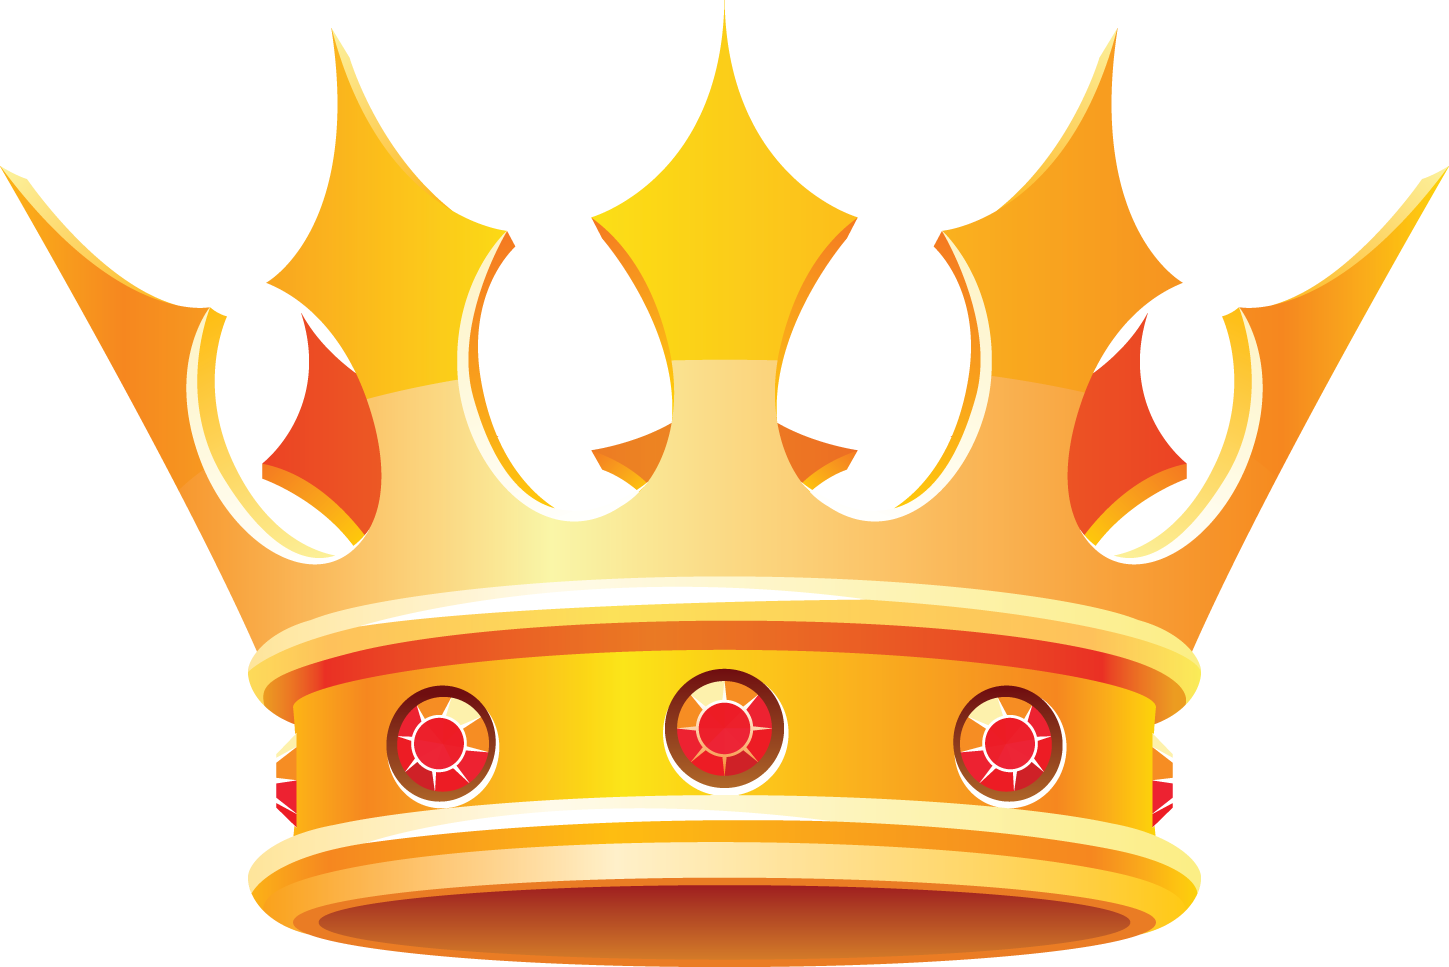 Free King Crown, Download Free Clip Art, Free Clip Art on.